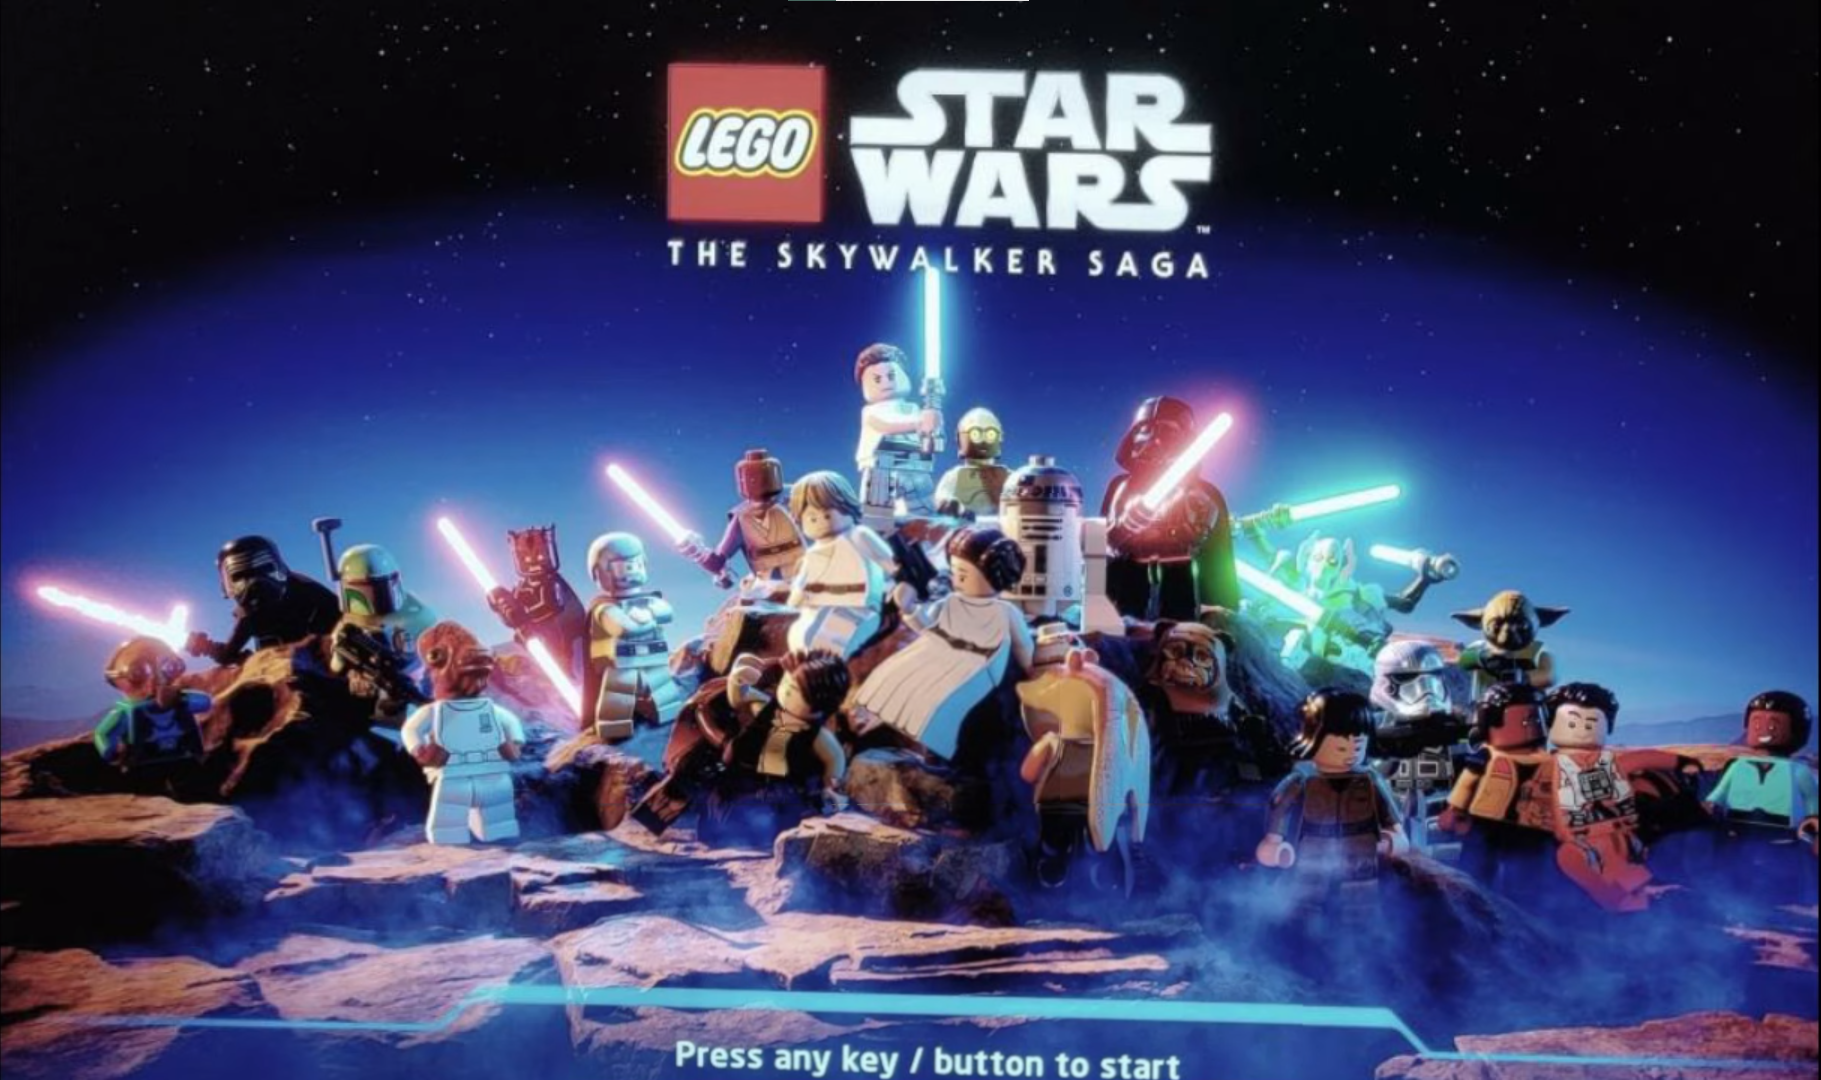 [Φήμη] Διέρρευσε η start screen του LEGO Star Wars: The Skywalker Saga;